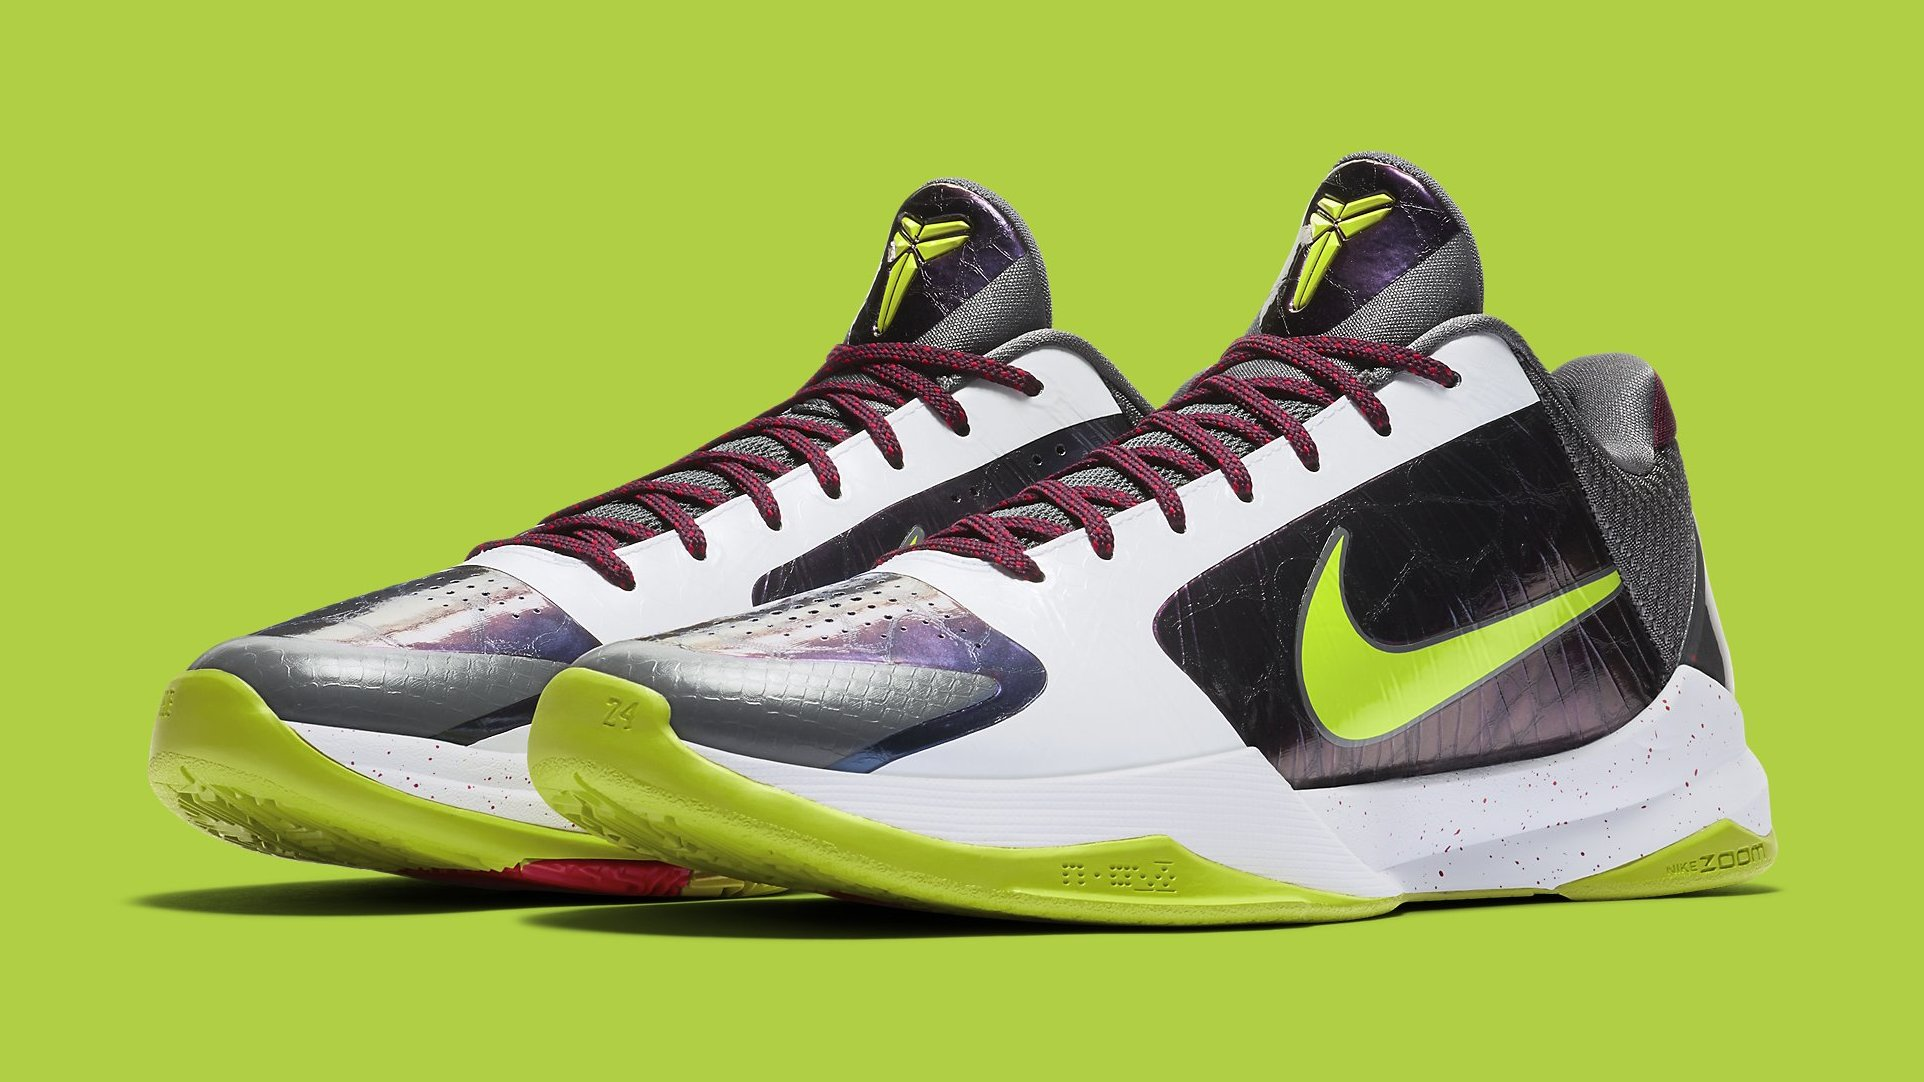 Nike Kobe 5 Protro 'Chaos' Release Date CD4991-100 | Sole Collector